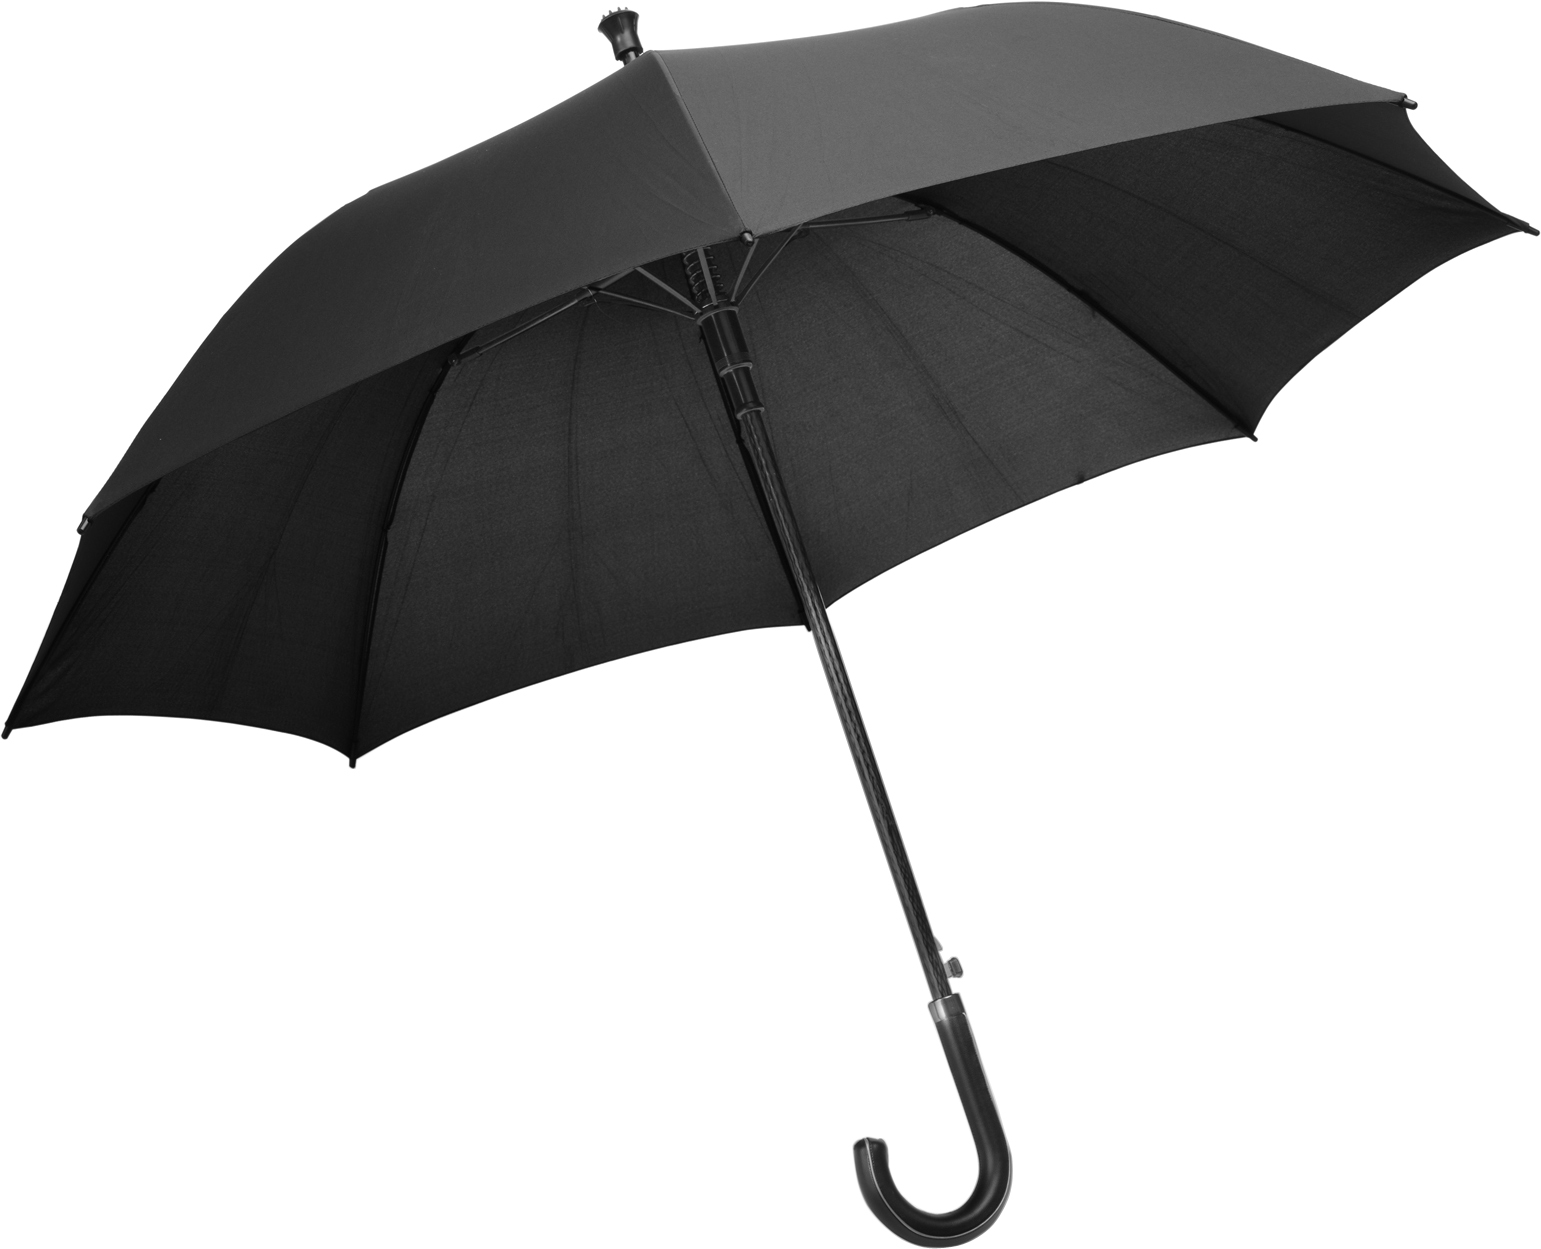 Promotional Charles Dickens umbrella